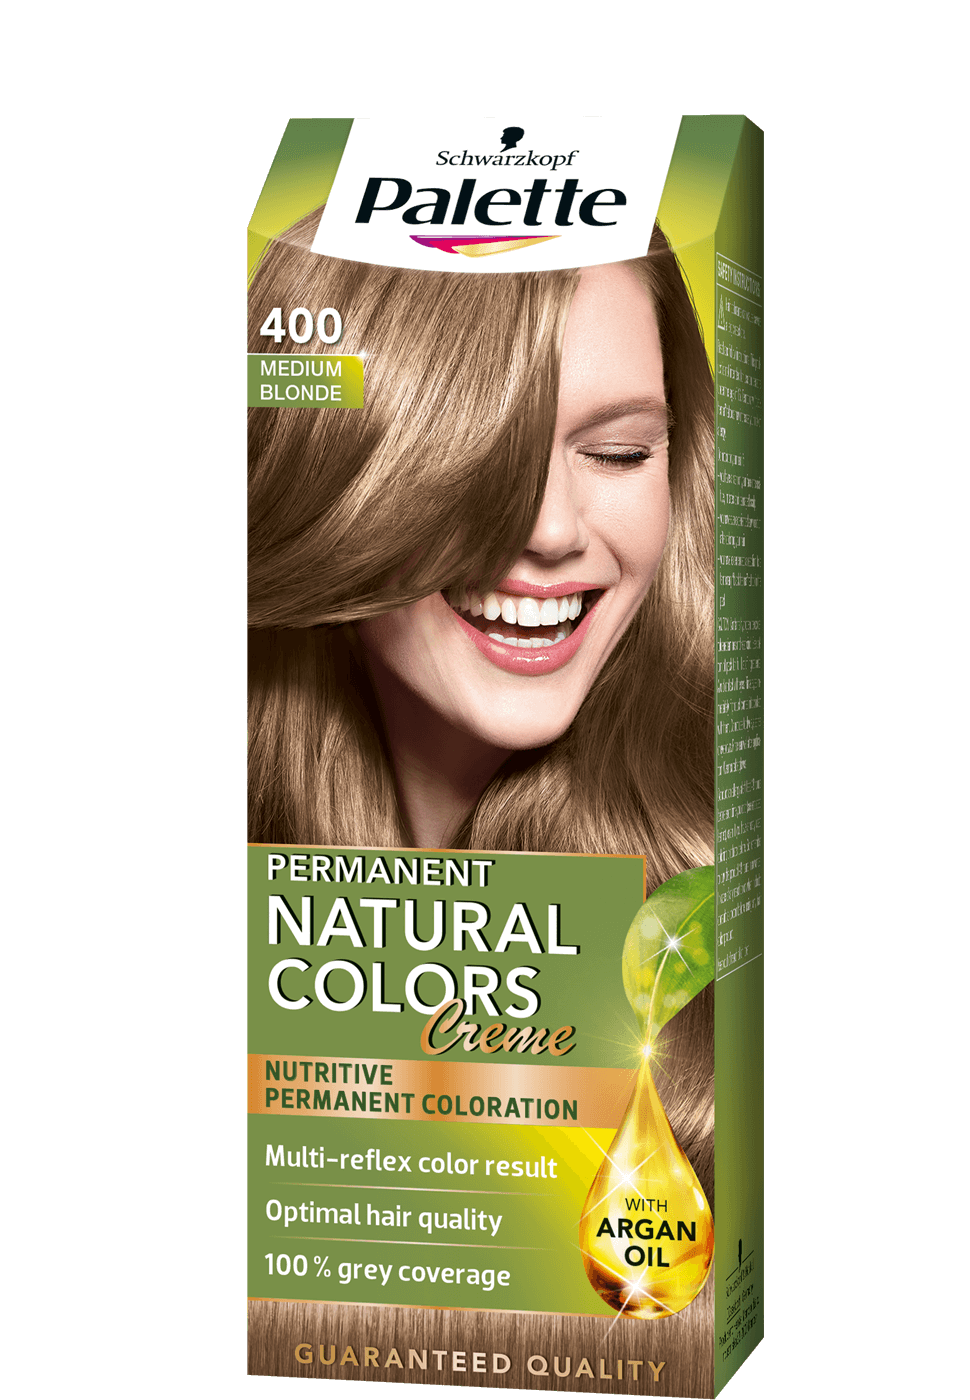 Permanent Natural Colors 400 - Középszőke